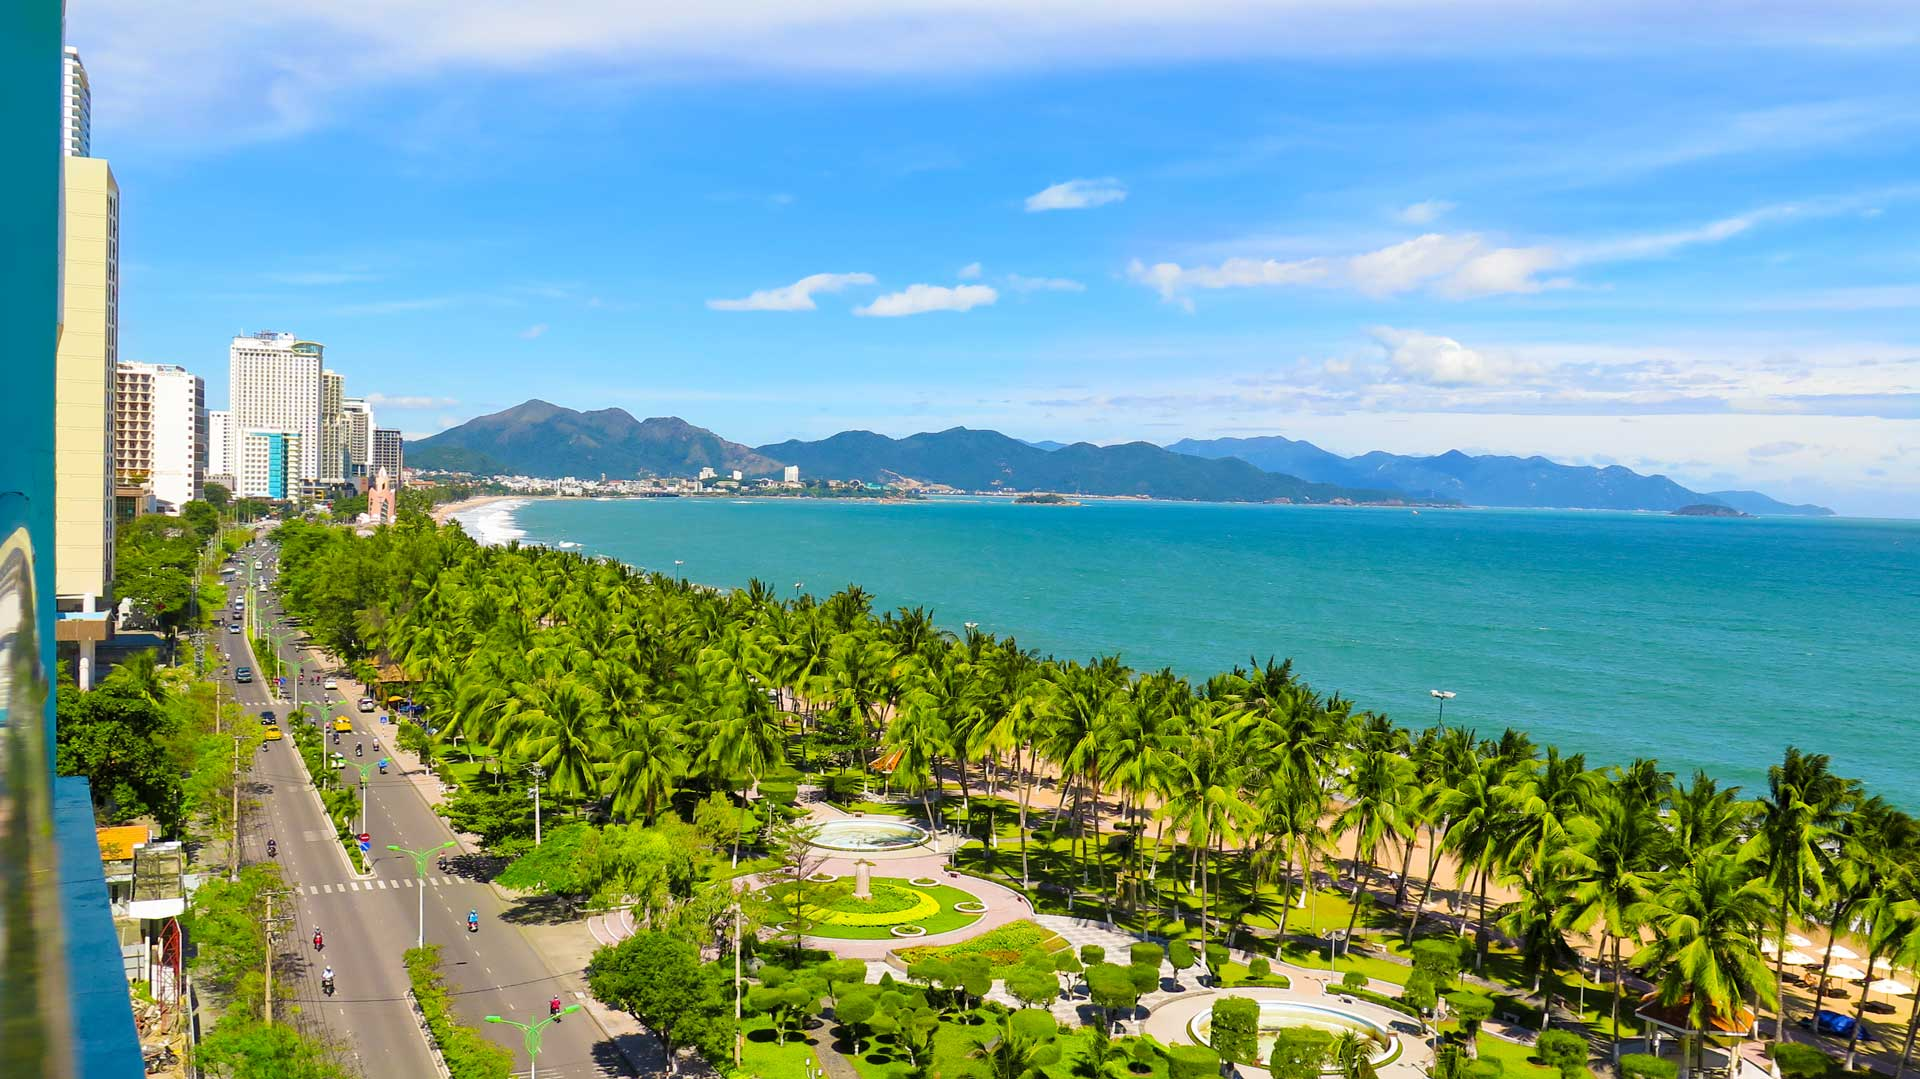 Nhatrang Beach Tran Phu Street View in Summer d78c8